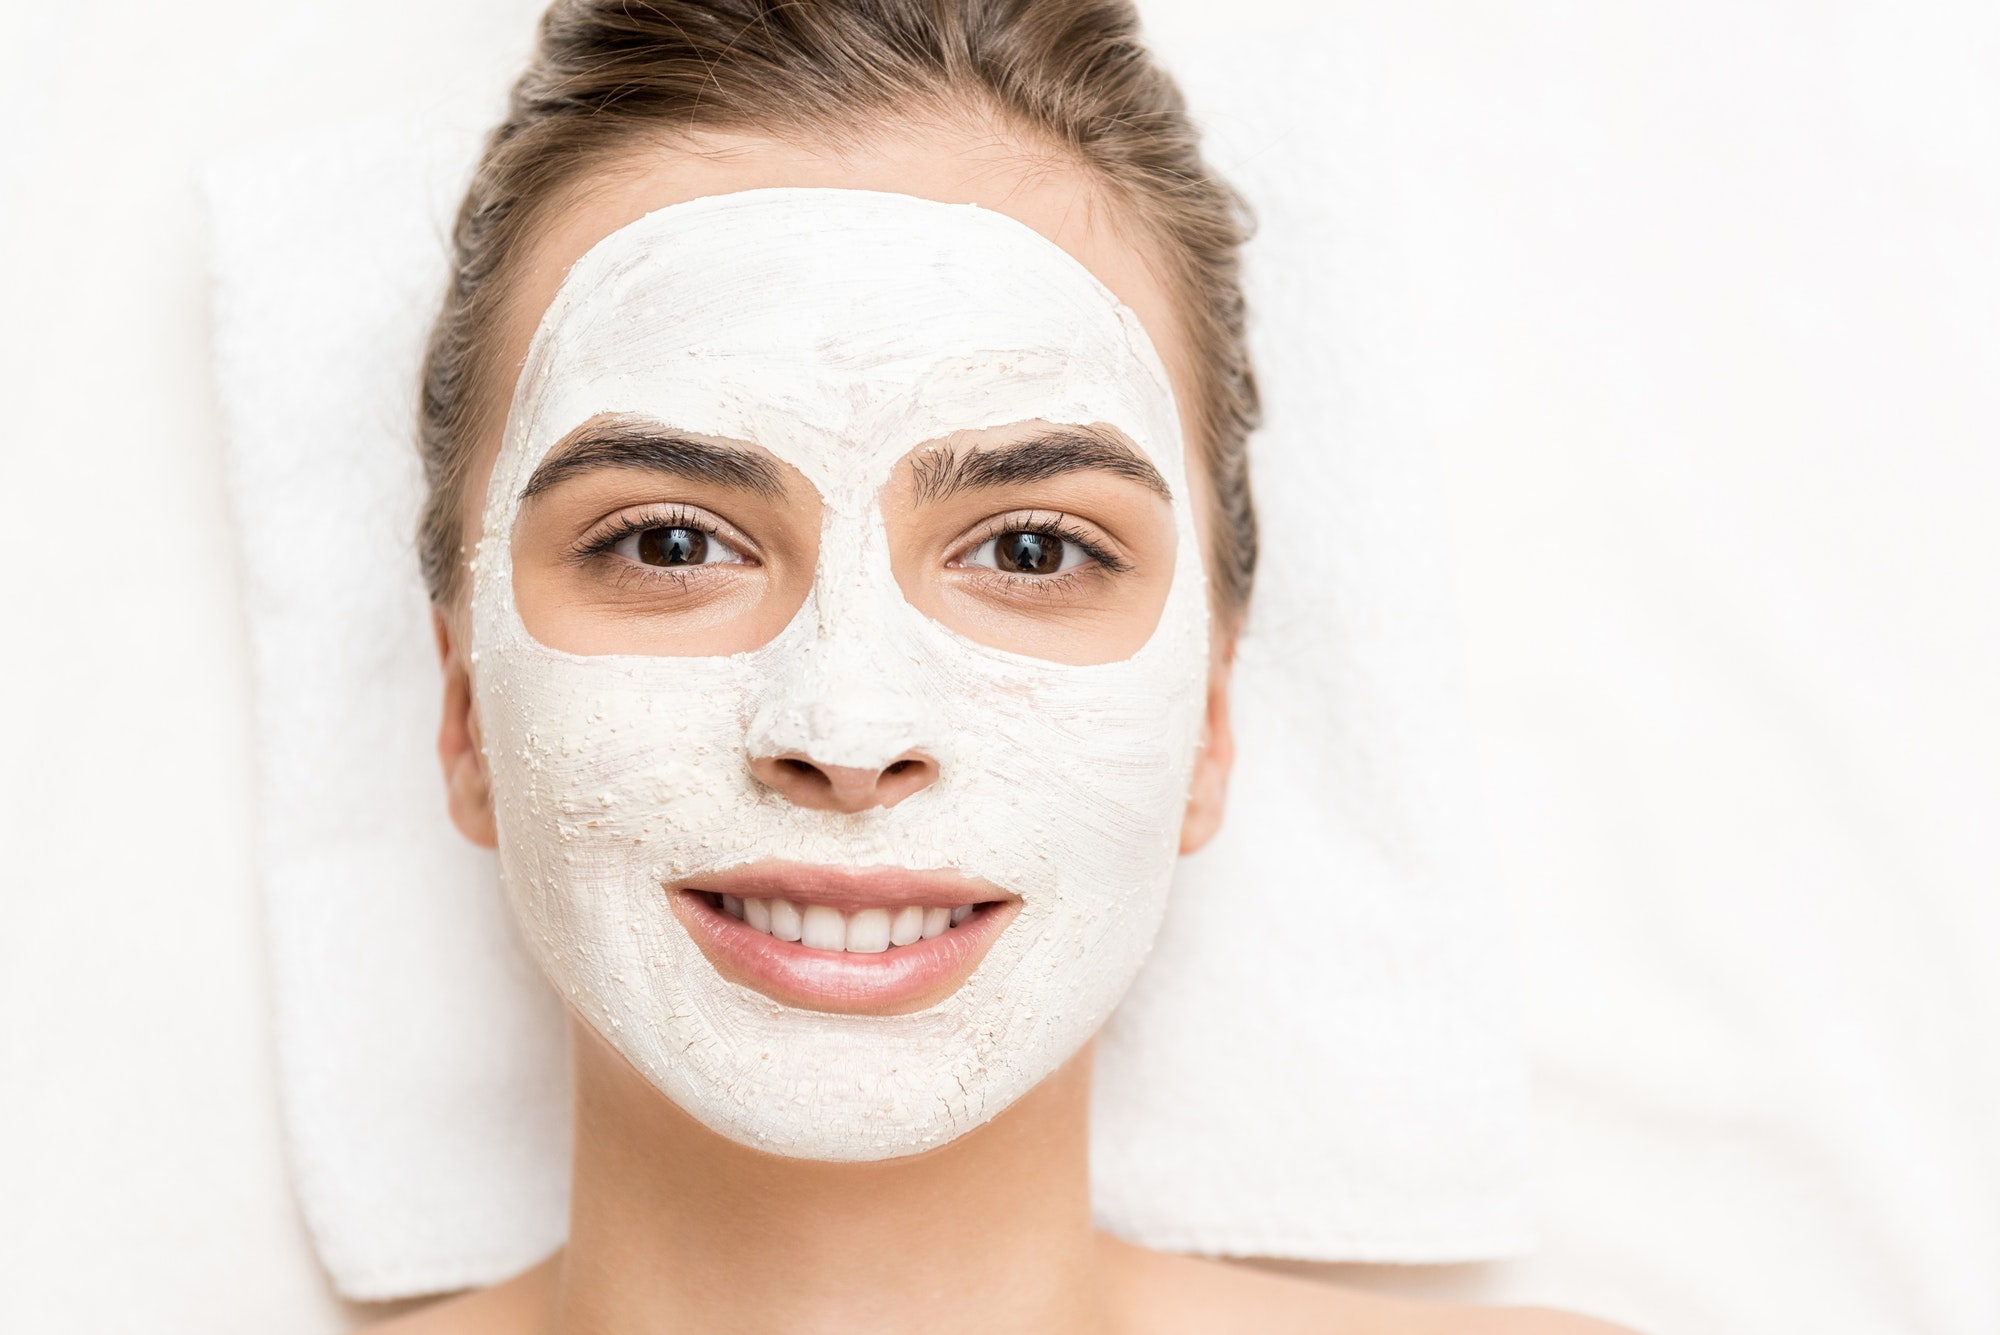 spa therapy for smiling woman receiving facial mask